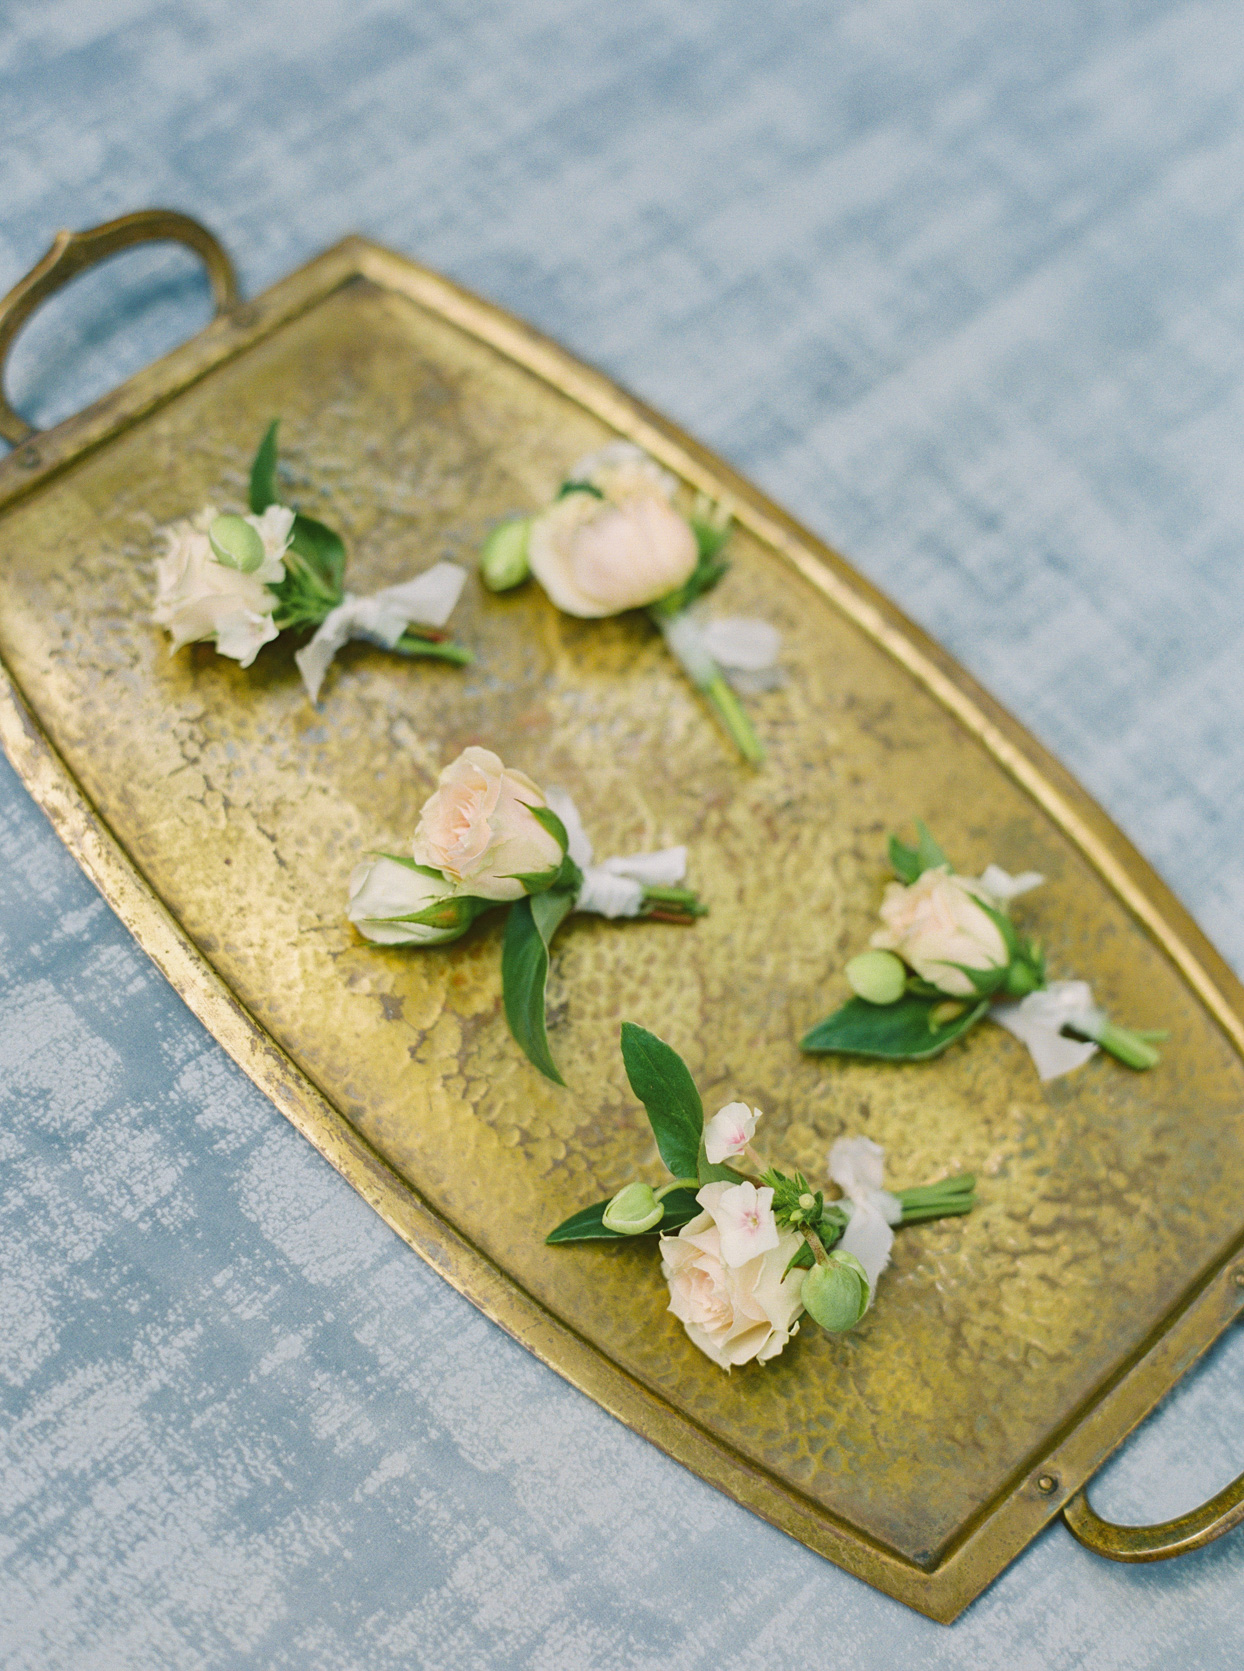 pale peach boutonnières on gold tray